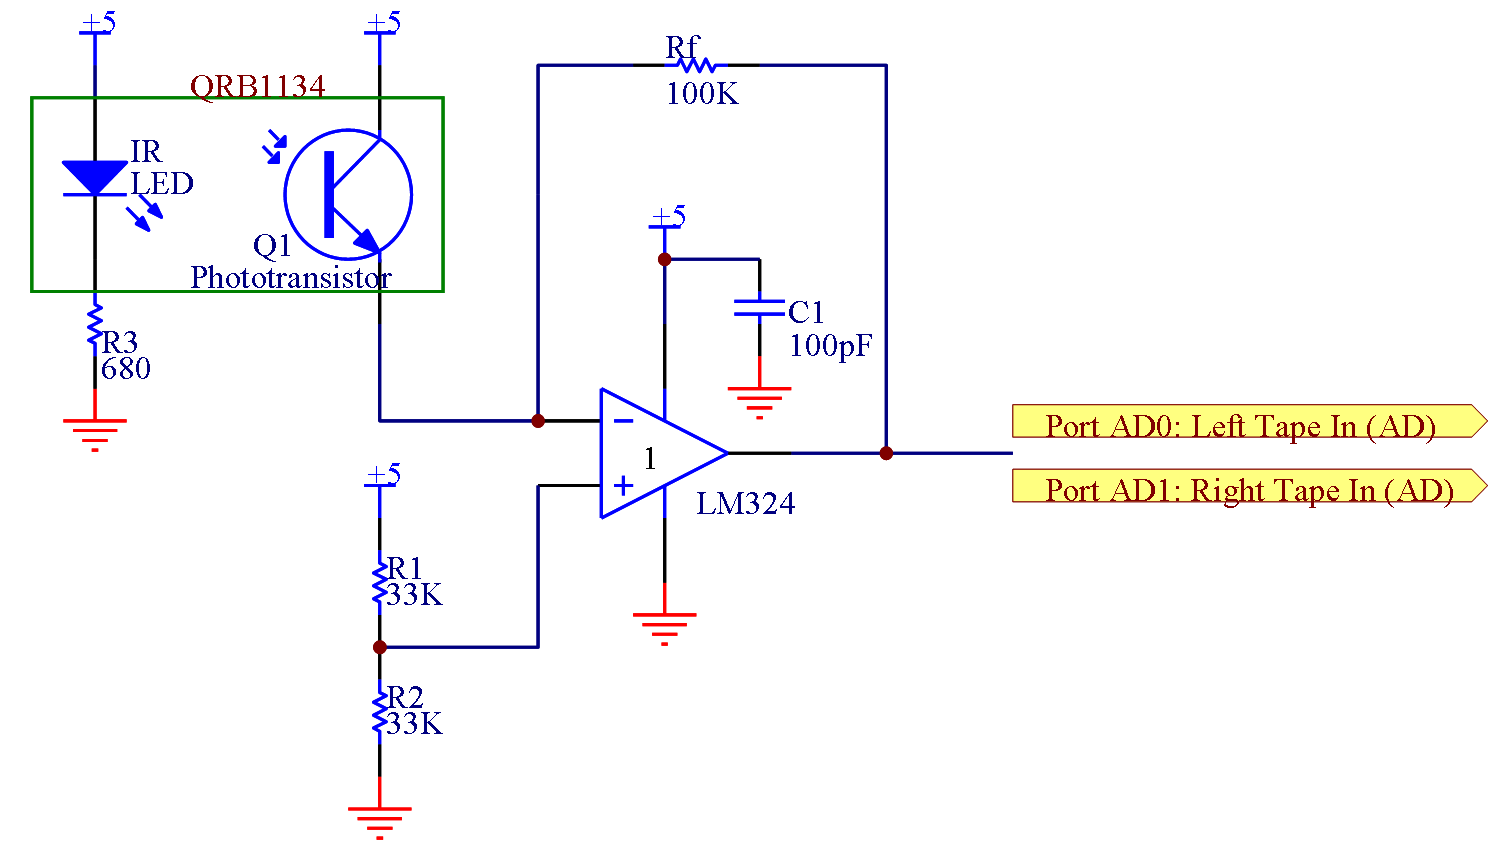 Battleship Ir Sensor Circuit Diagram Using Lm324 Instead The Robot Coordinates From Fac To Determine Our Position And Orientation At Any Given Time Thus We Kept Tape Circuits On